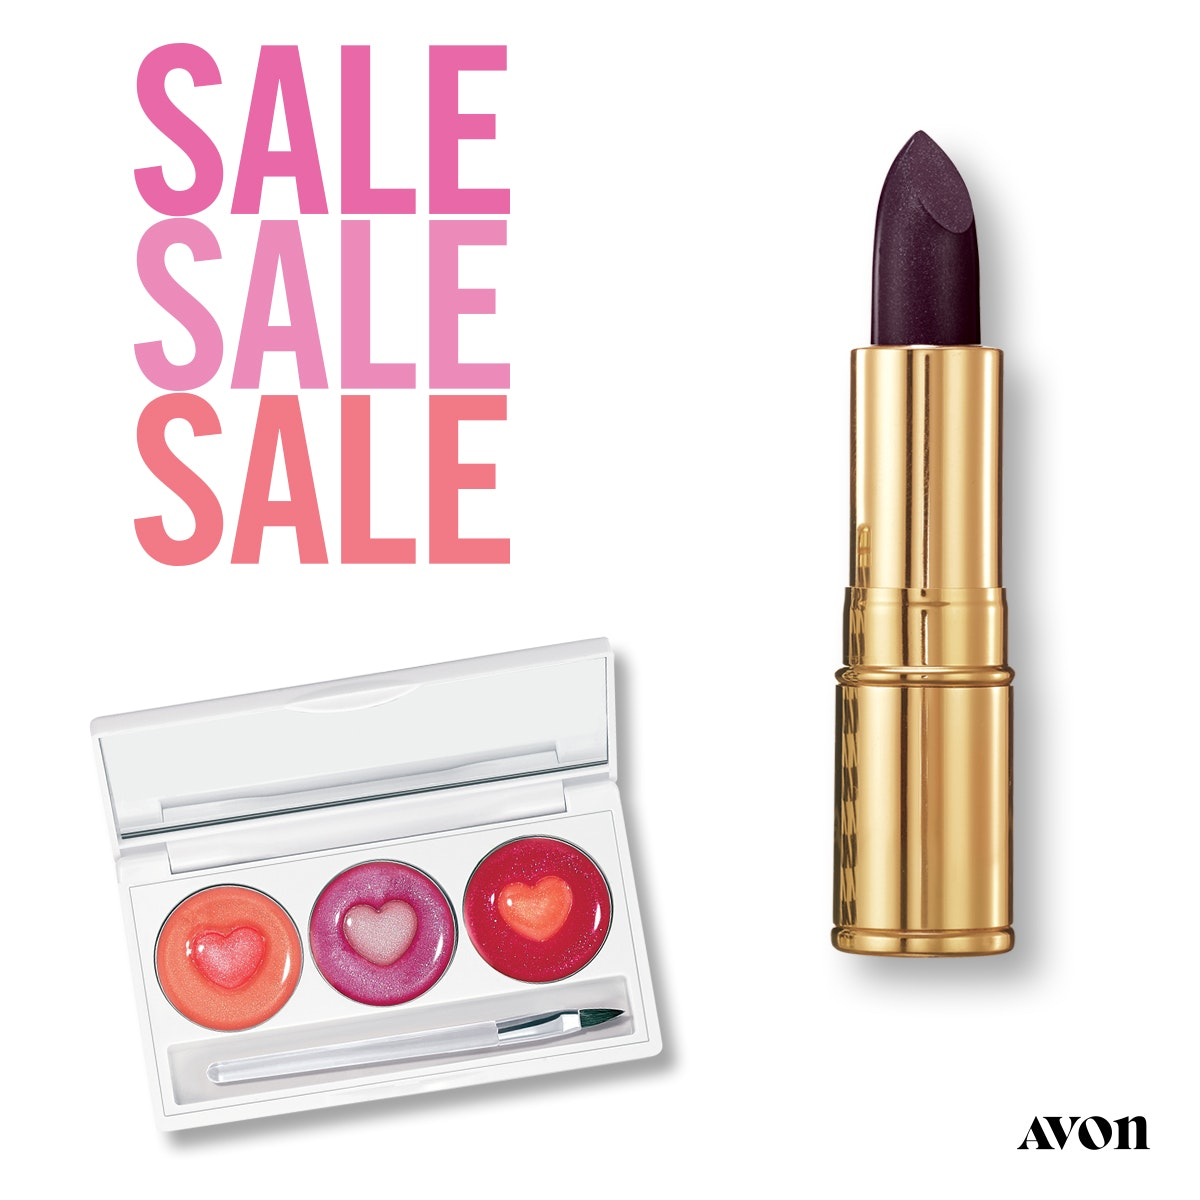 Avon Beauty and Body Sale up to 60% off!